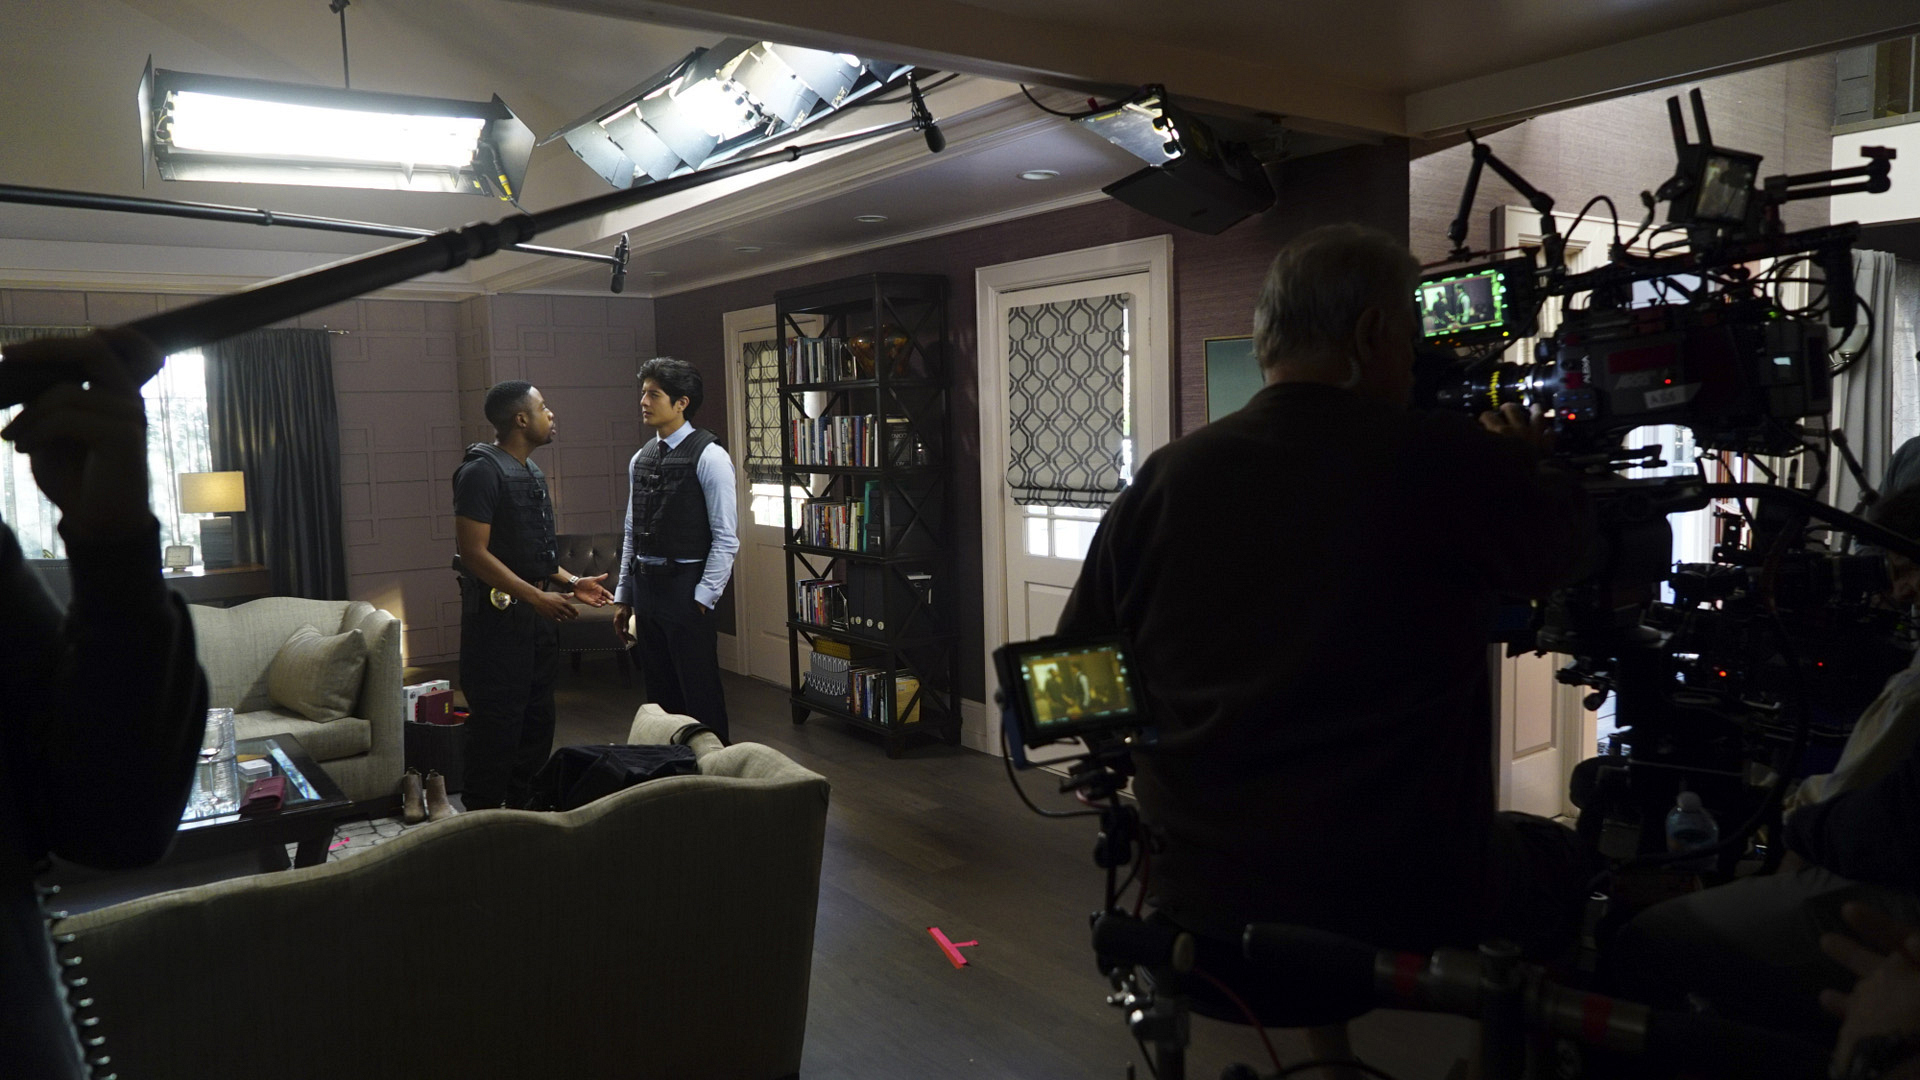 This backstage view shows Justin and Jon acting out a scene together on set.